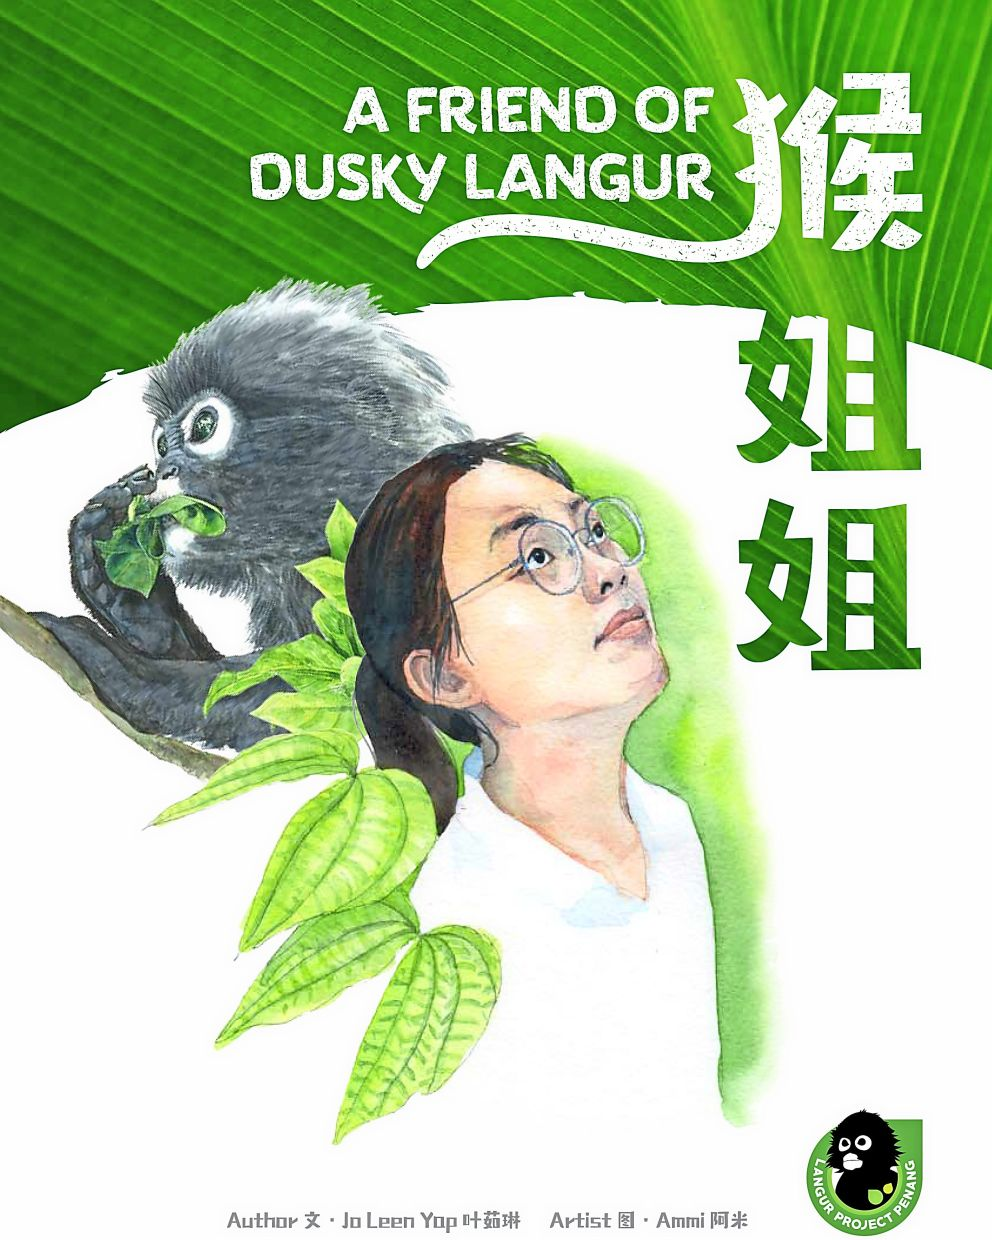 'A Friend Of Dusky Langur' book, with a story by Jo Leen Yap and illustrations by Ammi.